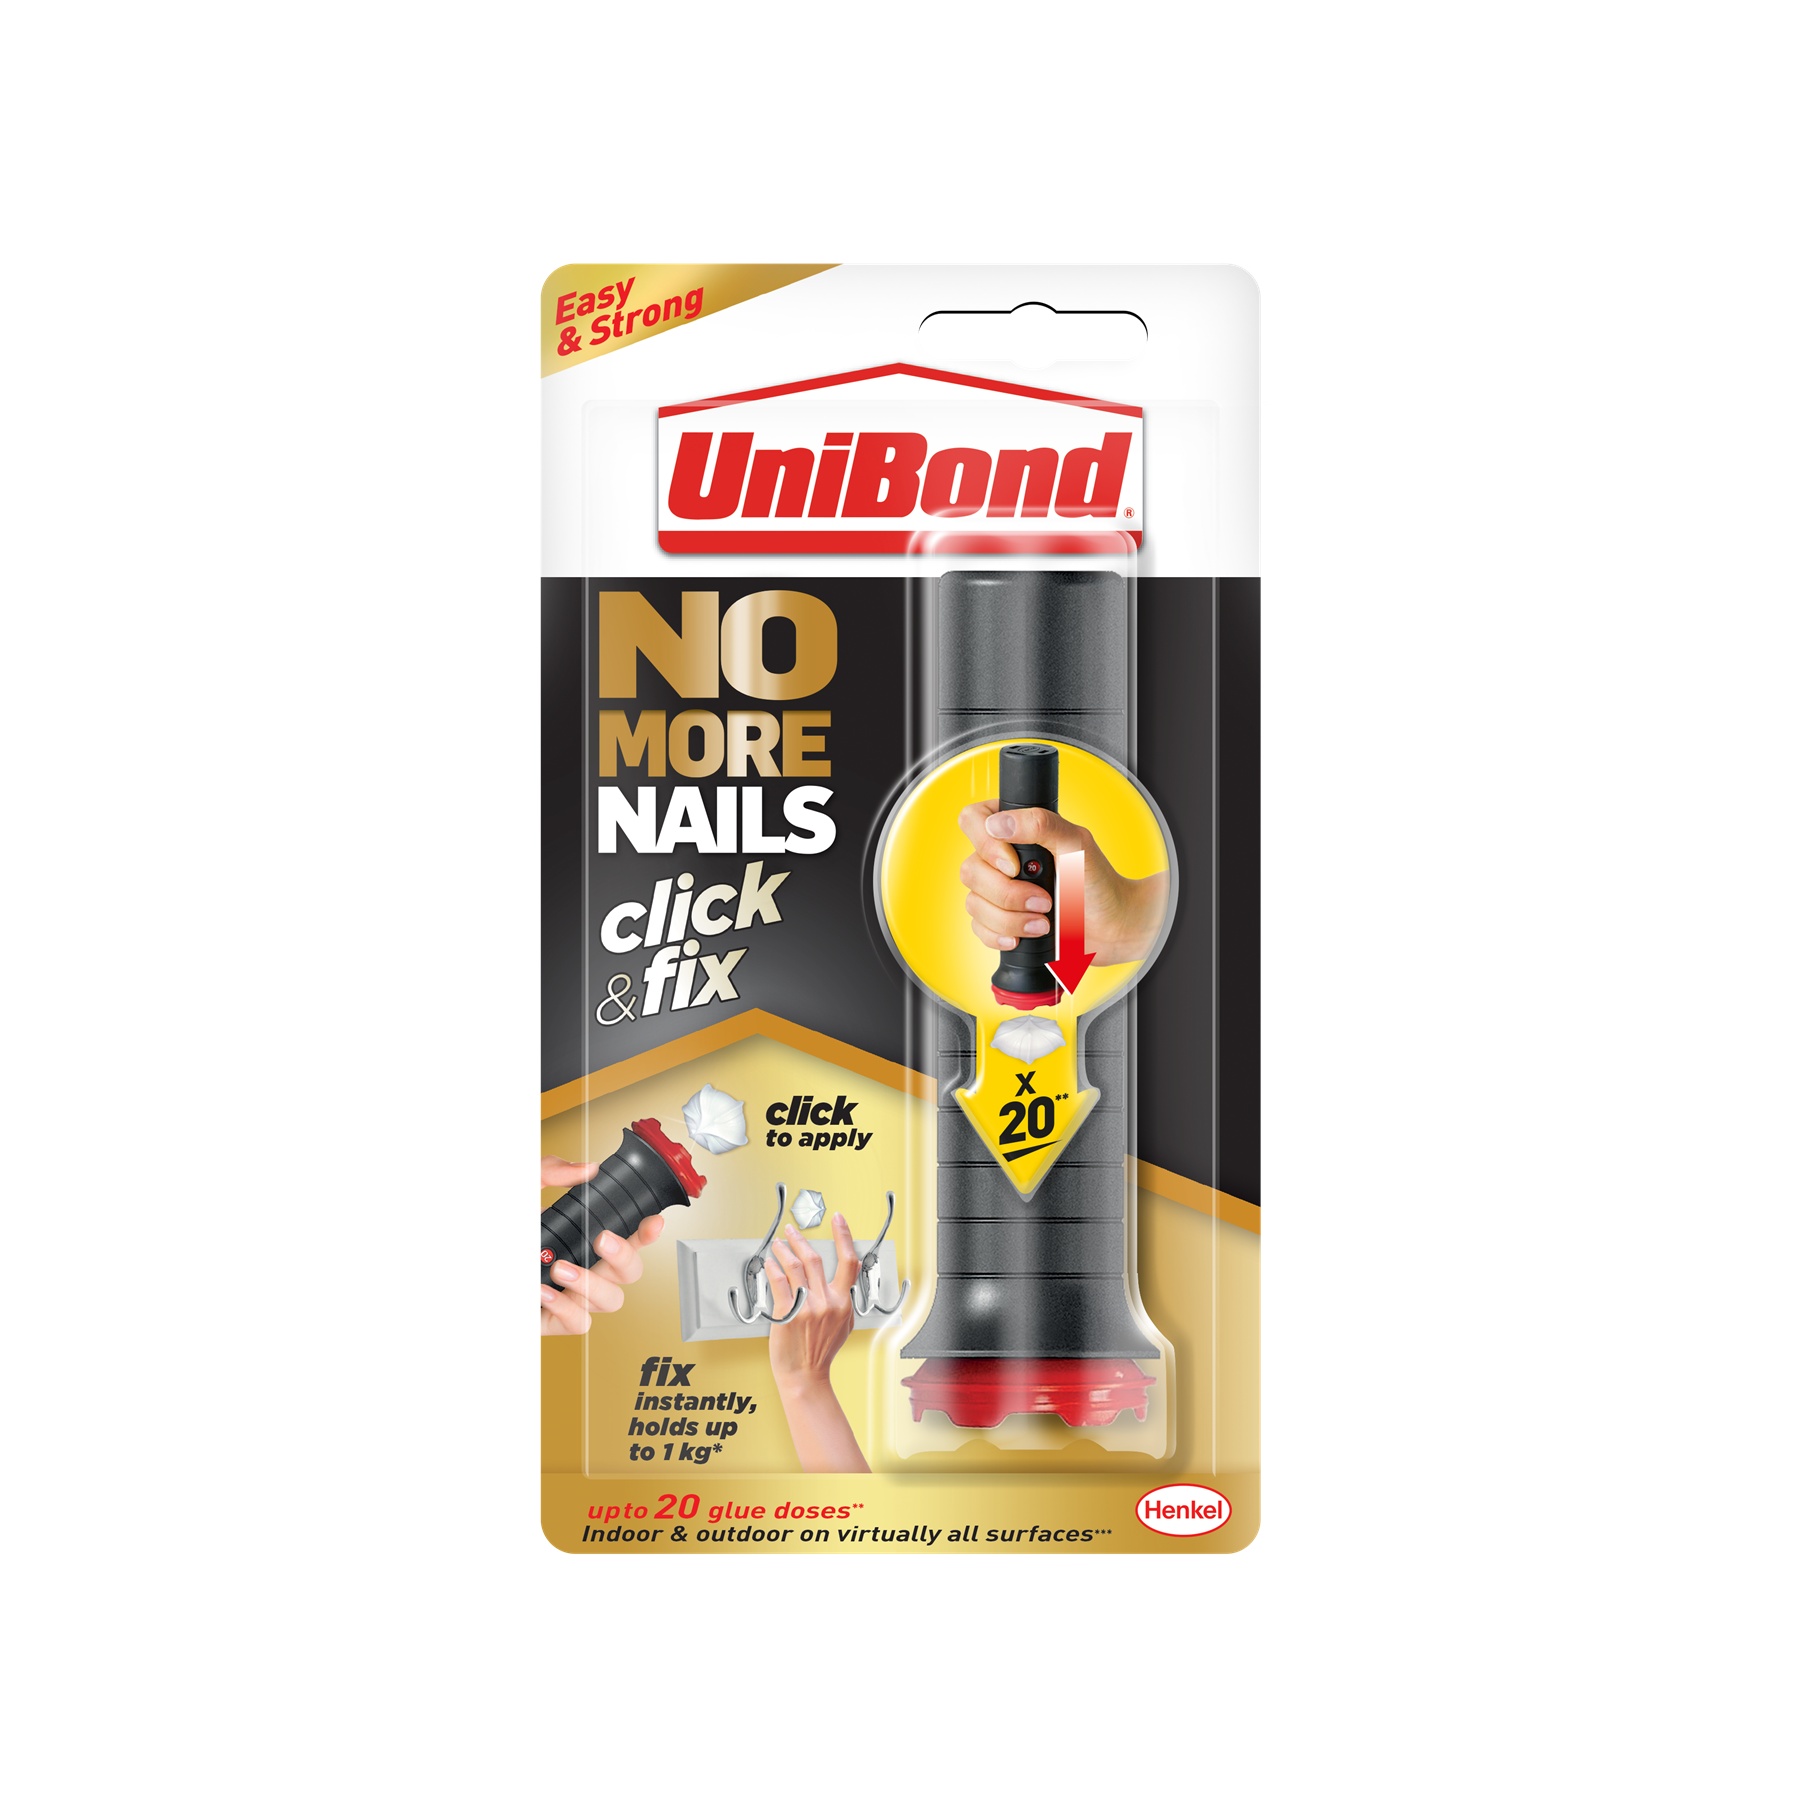 Unibond No More Nails Click & Fix 20 Dose (2312989)